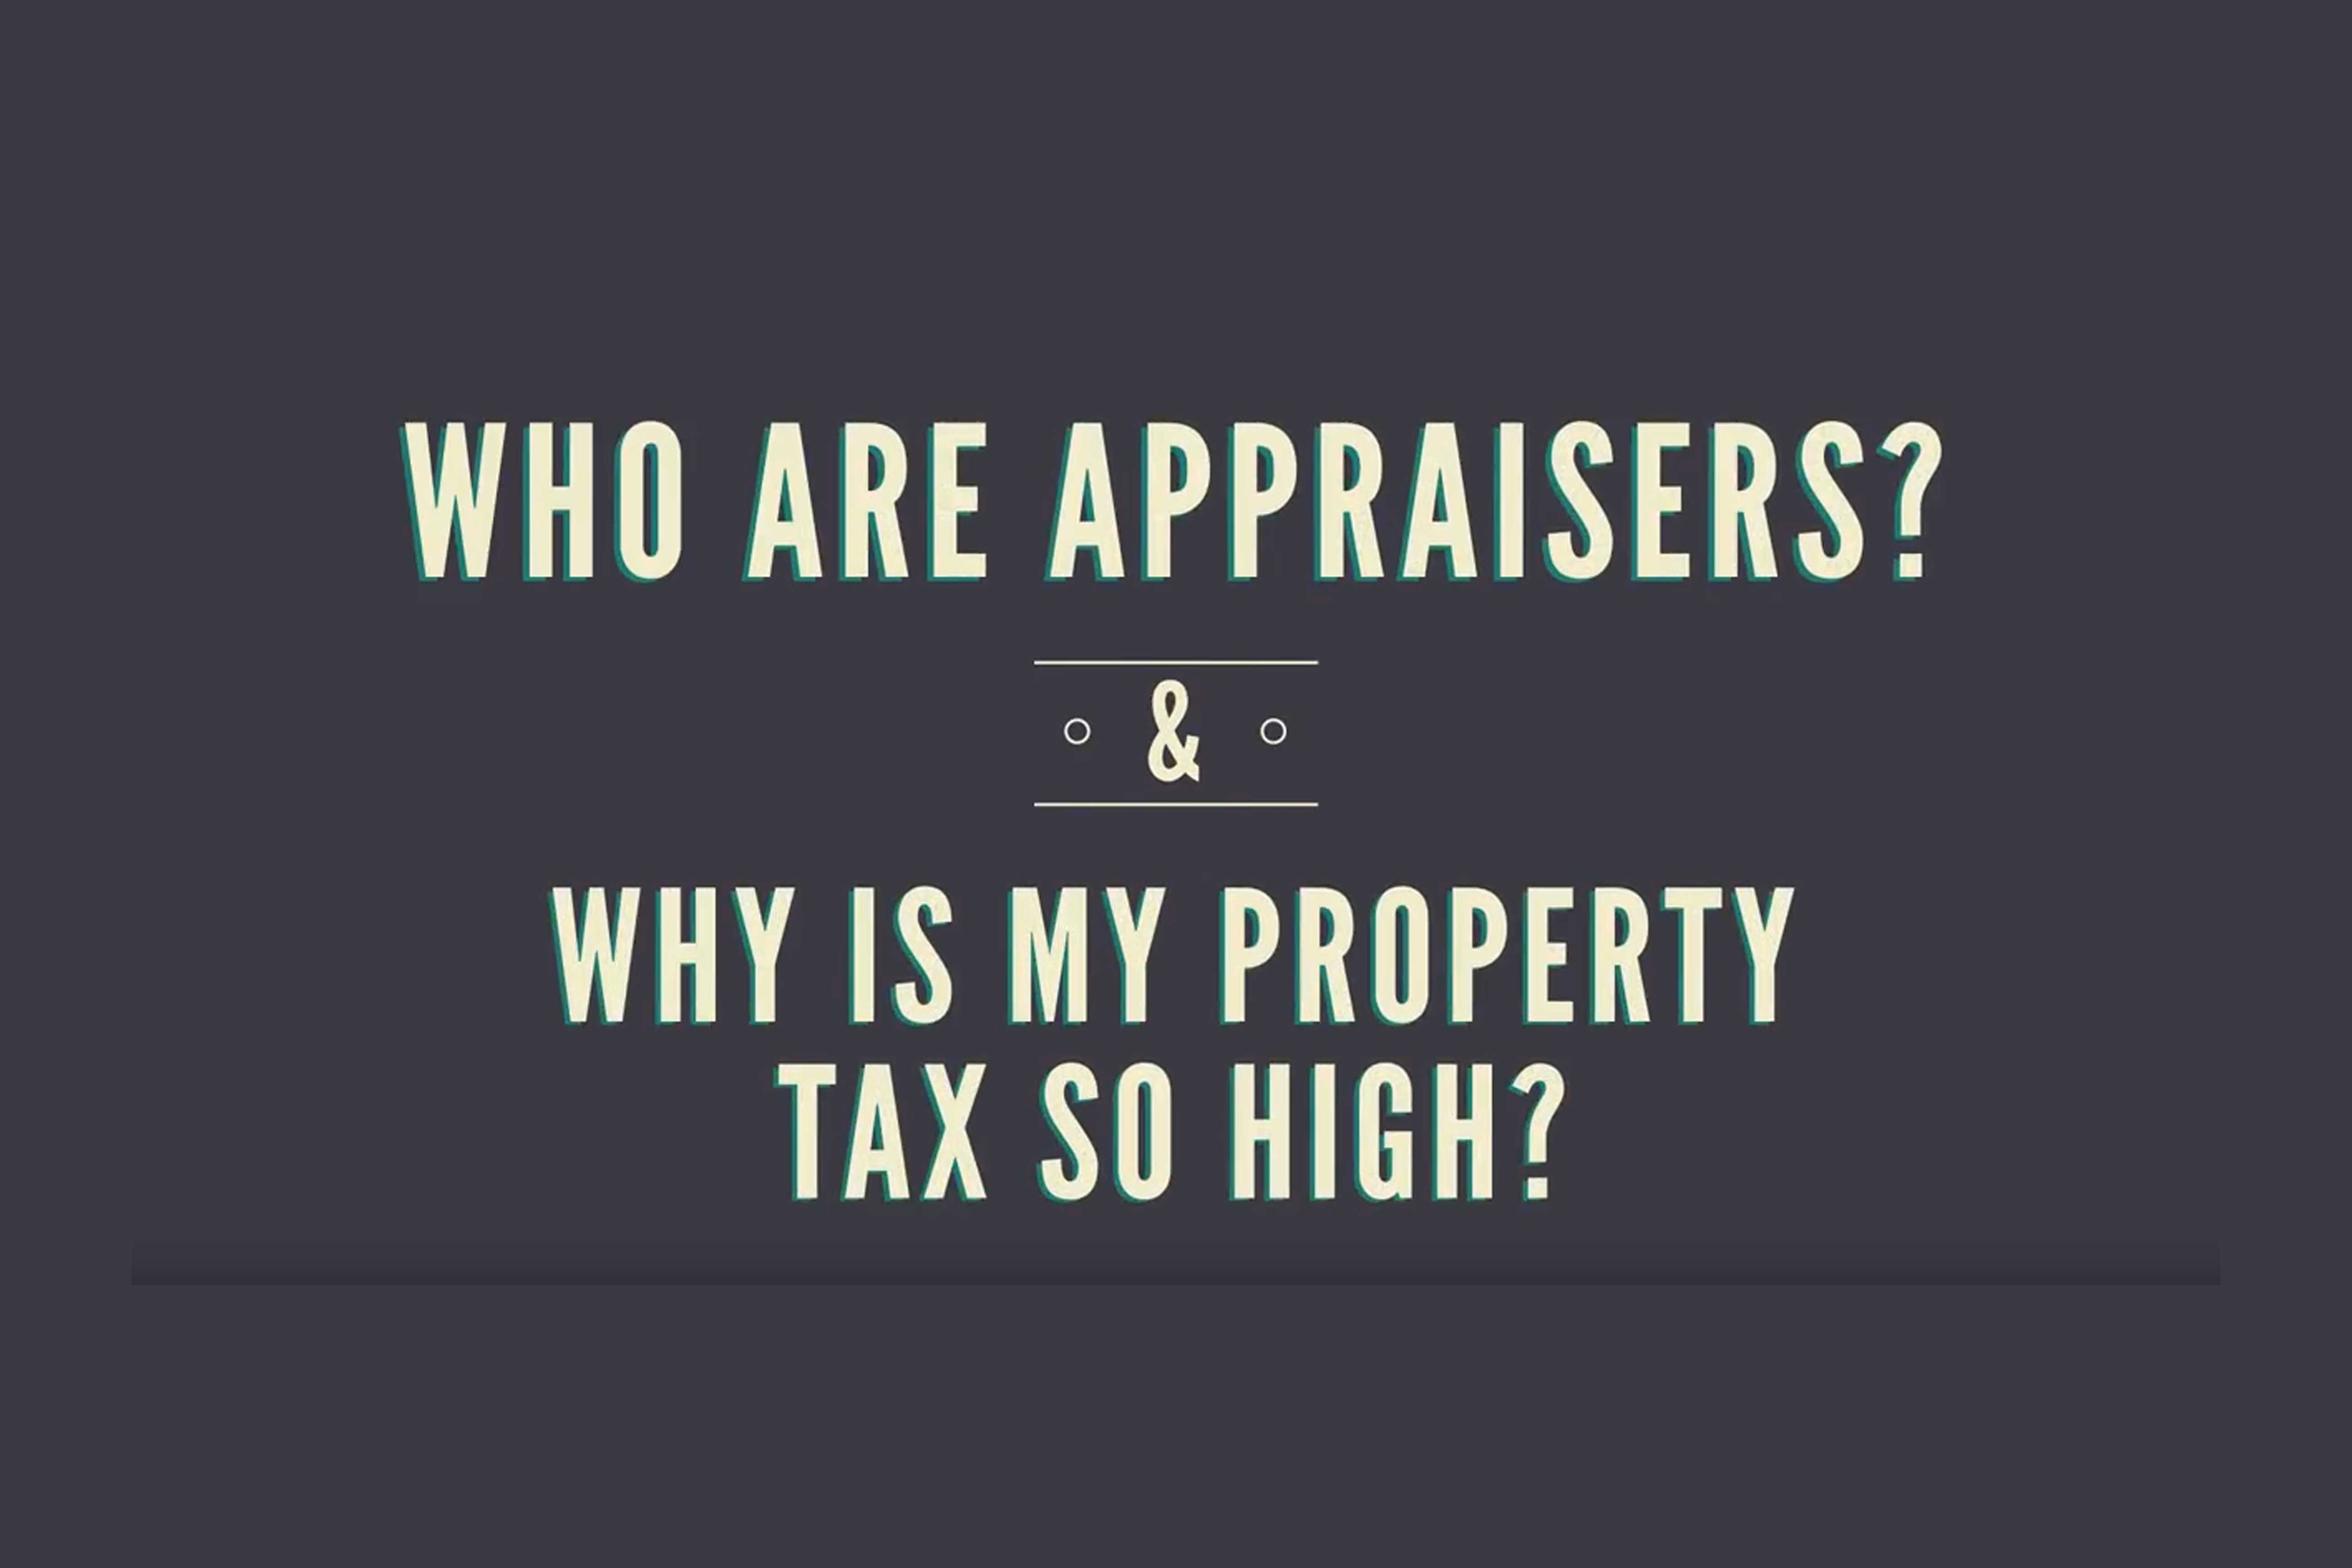 BernCo Video: Role of the Tax Appraiser